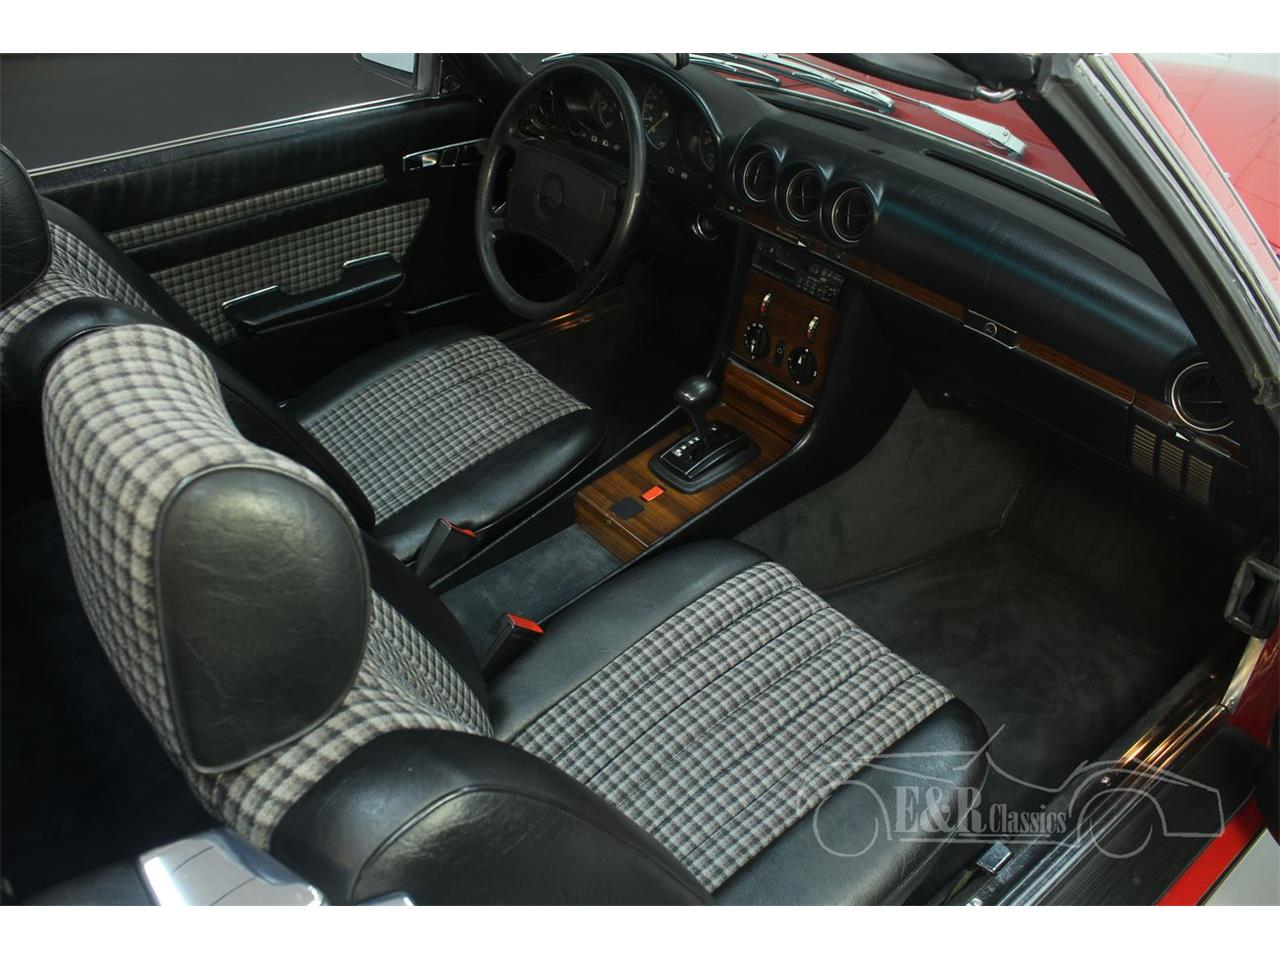 Large Picture of '85 Mercedes-Benz 380SL - $38,550.00 - R1DJ